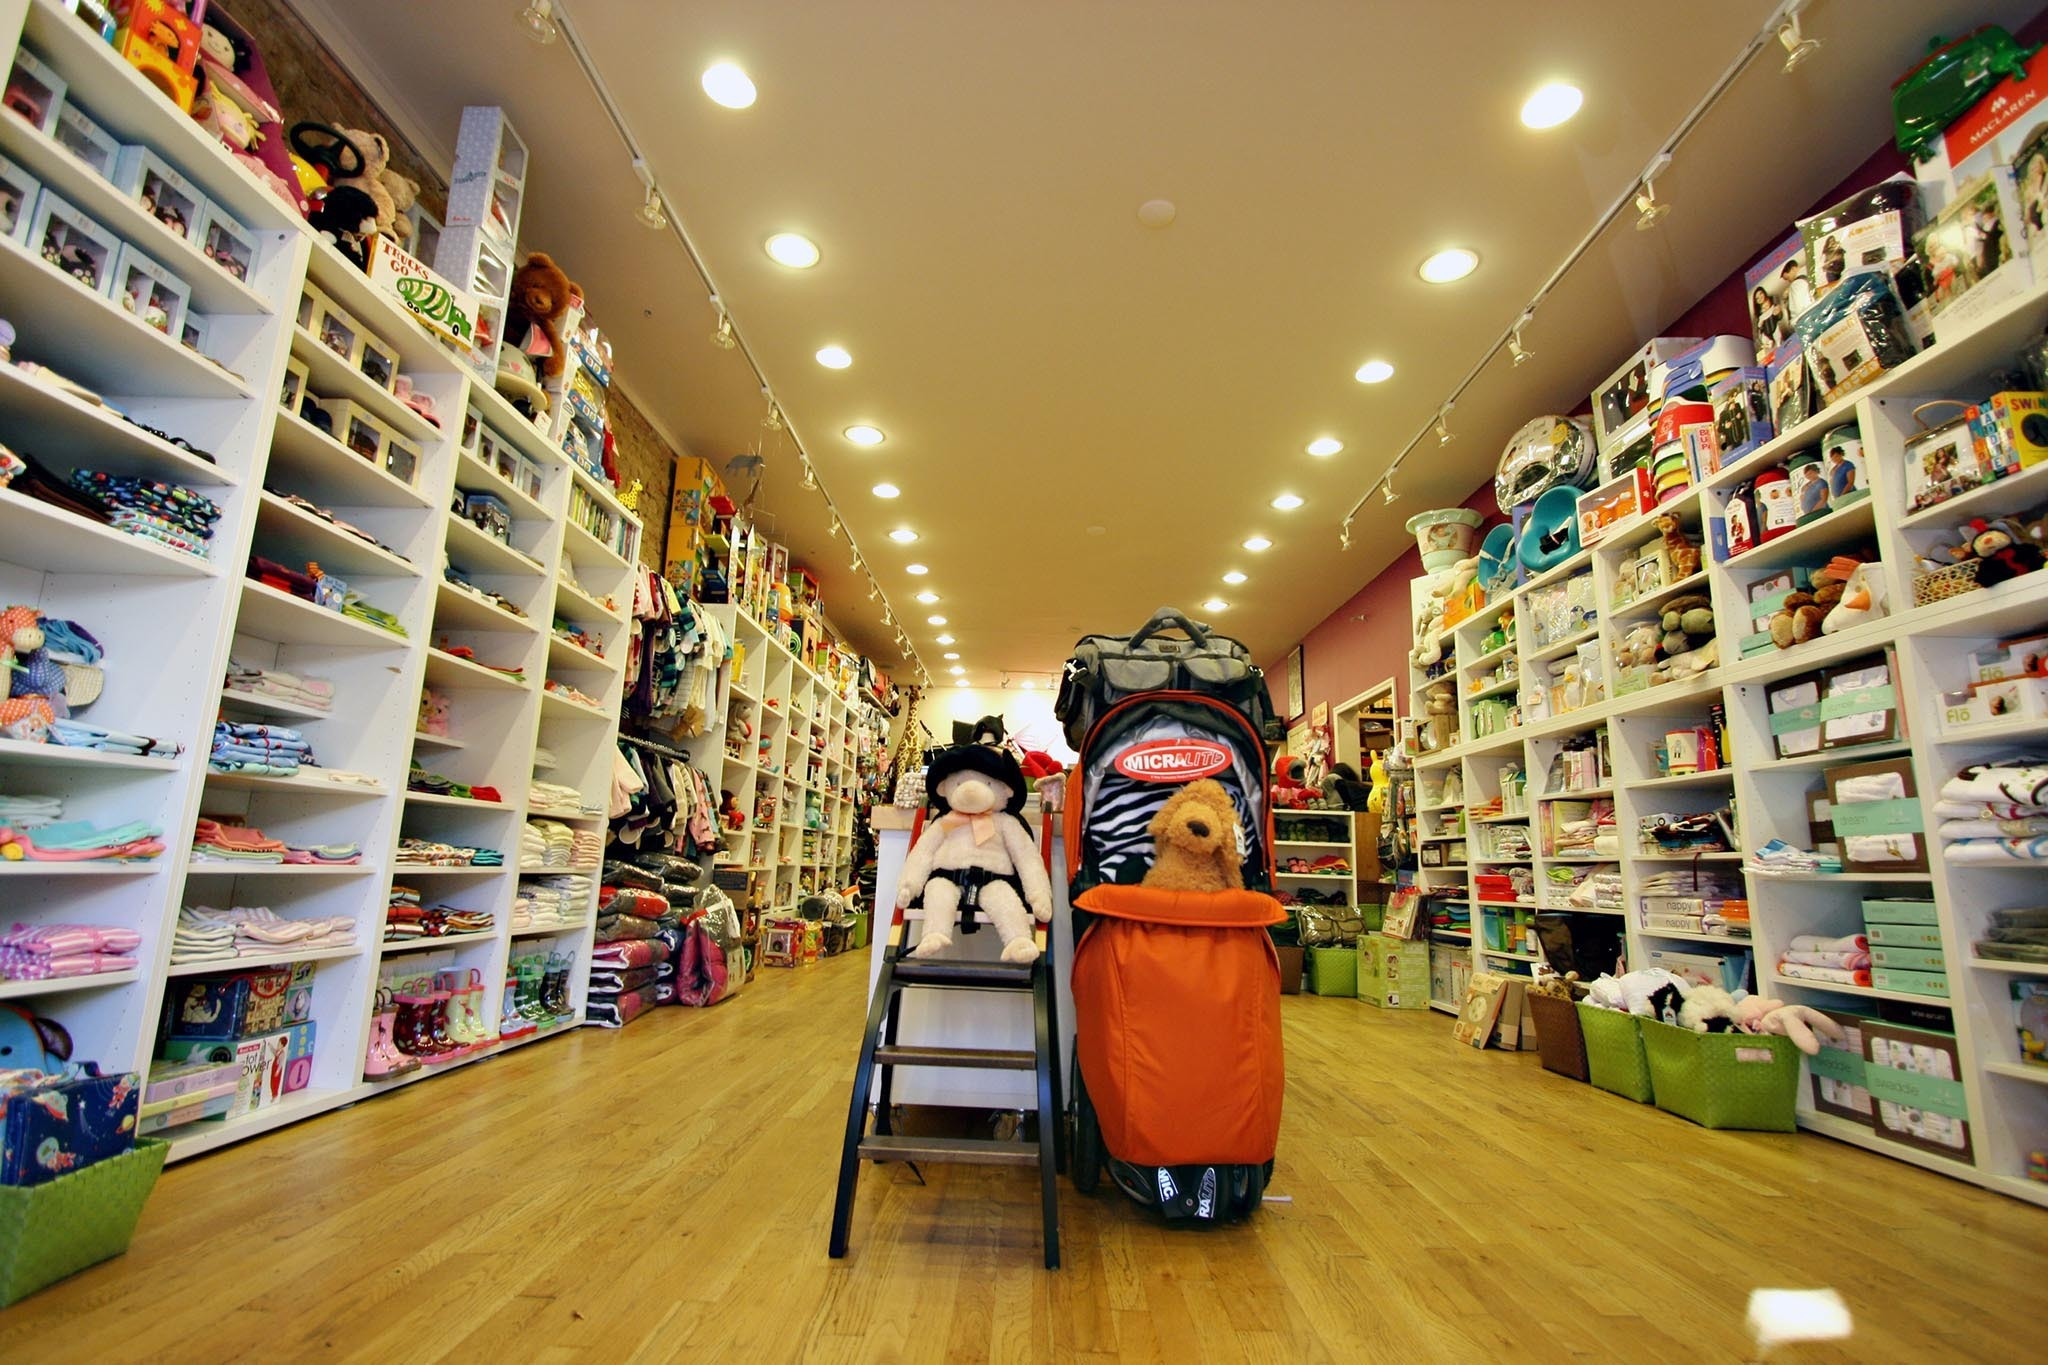 The largest baby store & nursery showroom in the Lehigh Valley is at Hamilton Boulevard, Allentown, Pennsylvania.